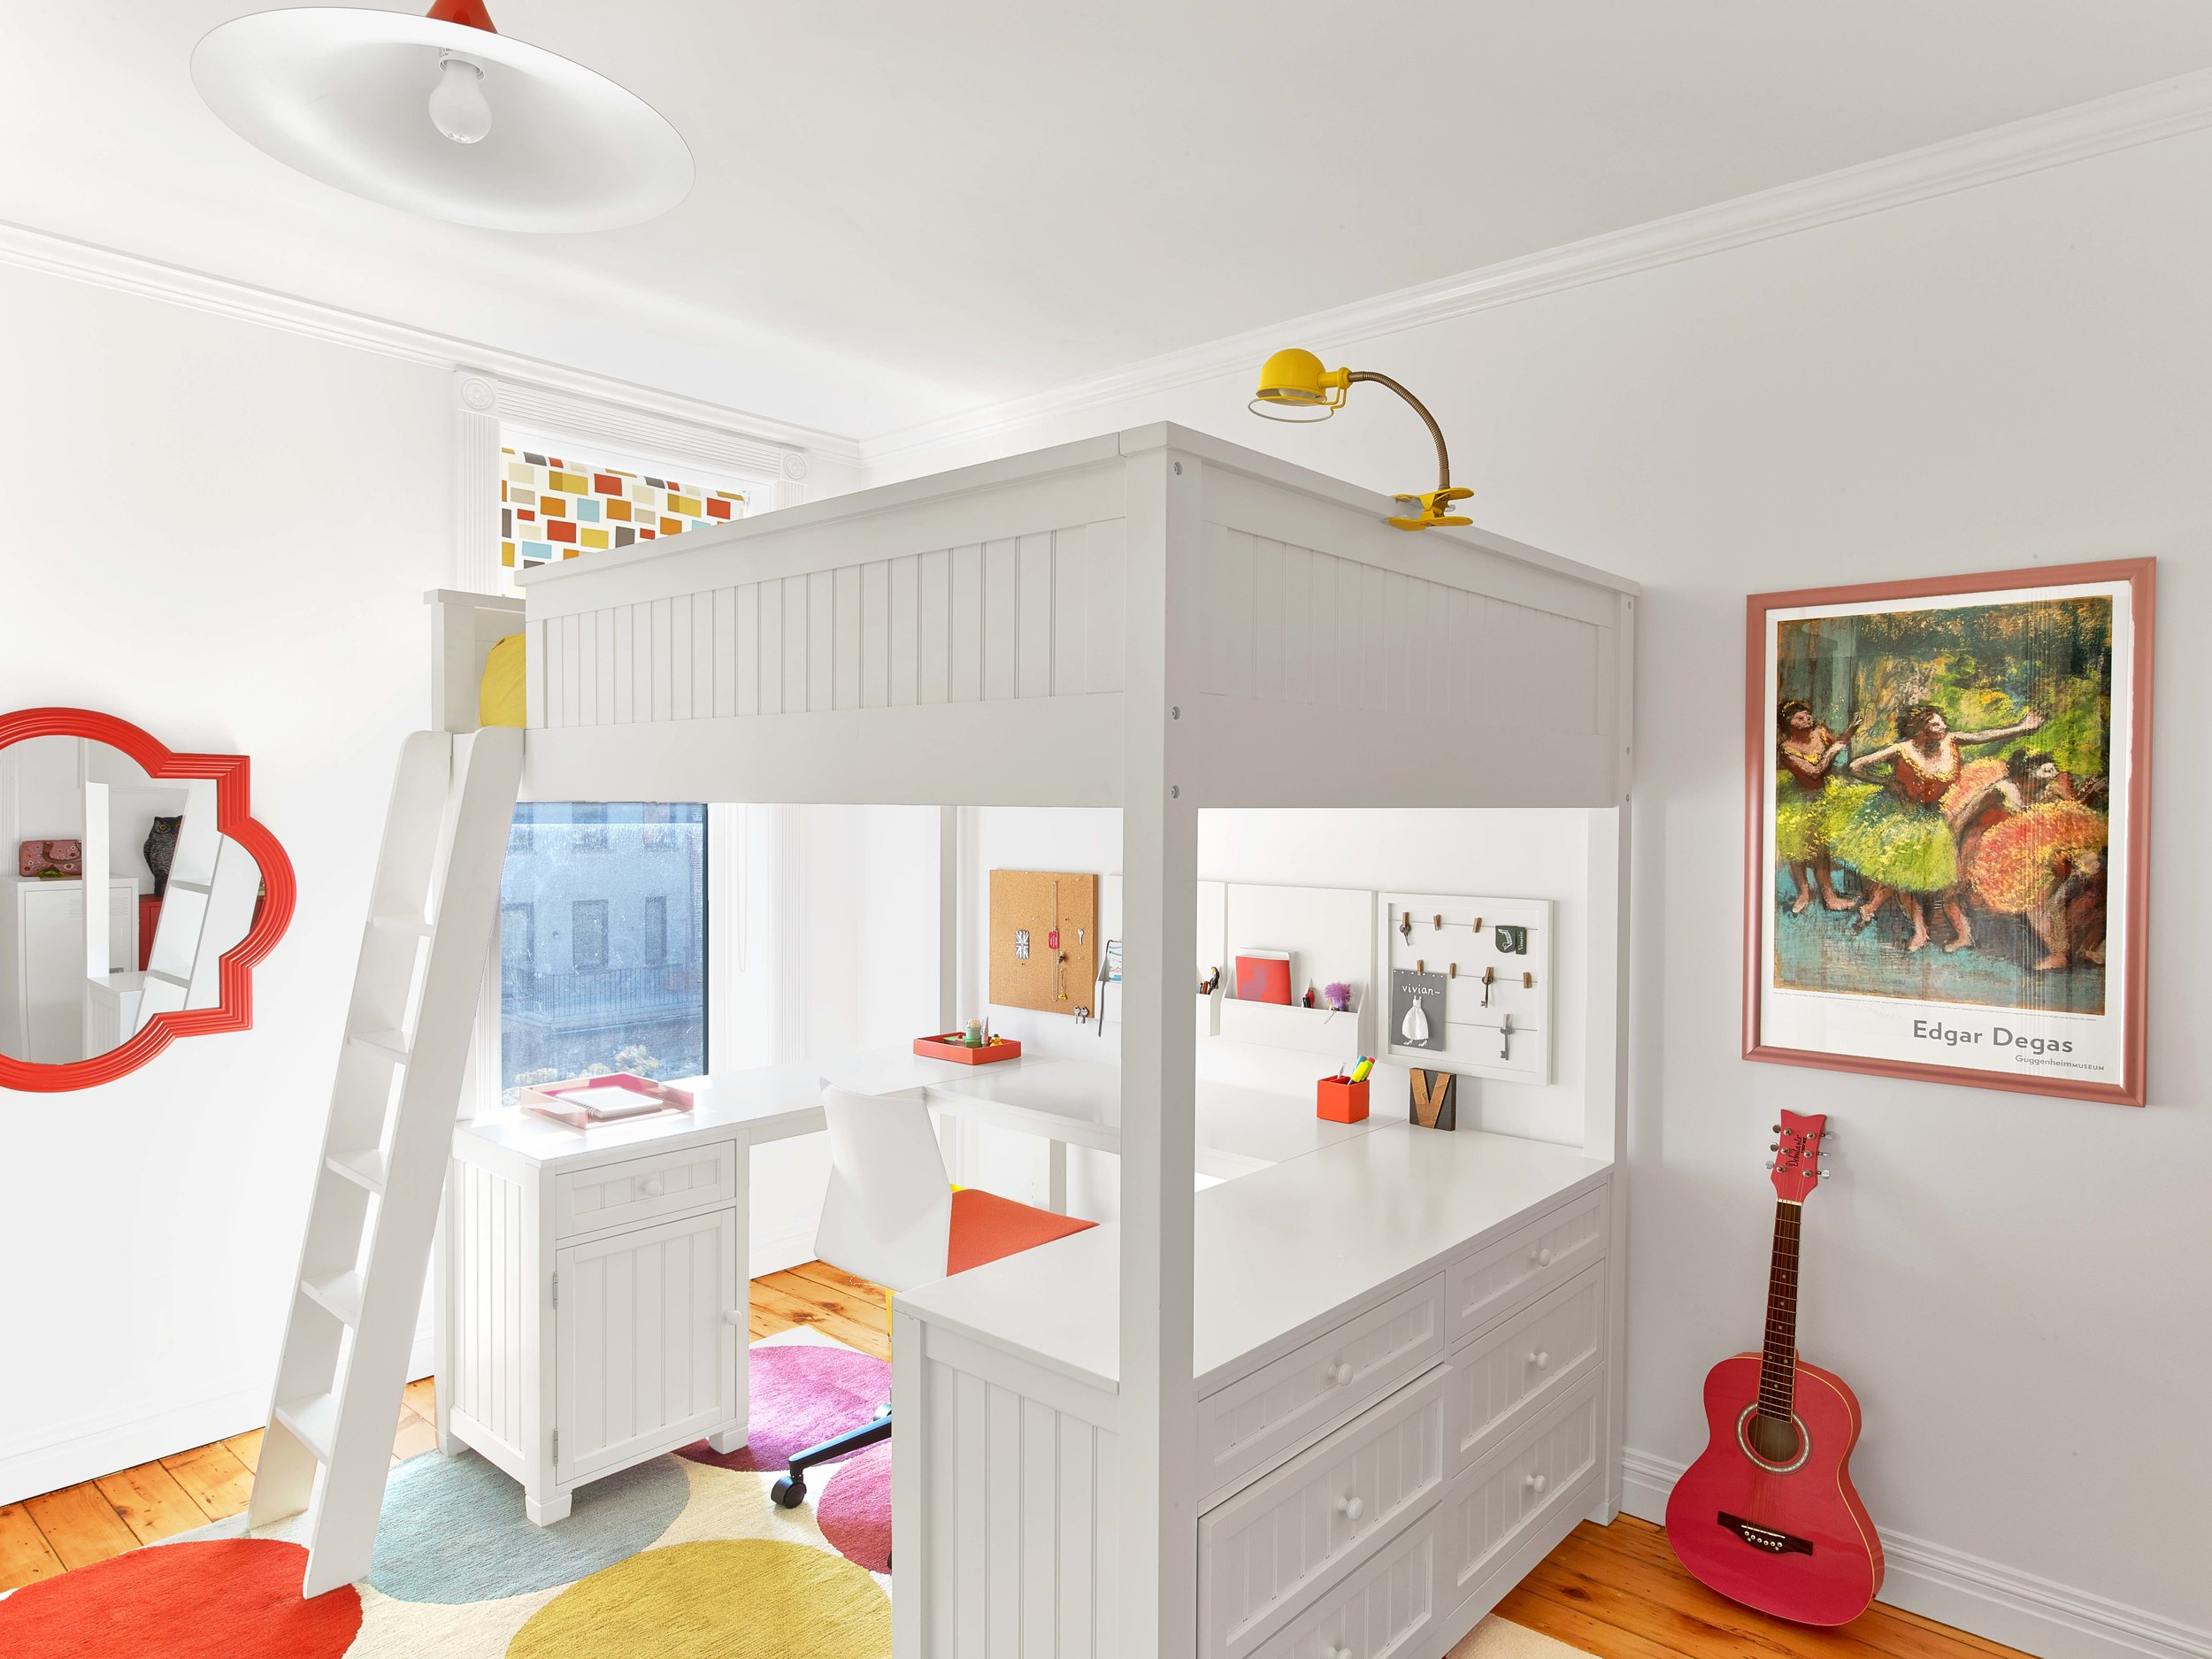 White-Bunk-Bed-Kids-Room-Colorful-Degas-JMorrisDesign-Brooklyn-Interior-Designer.jpg